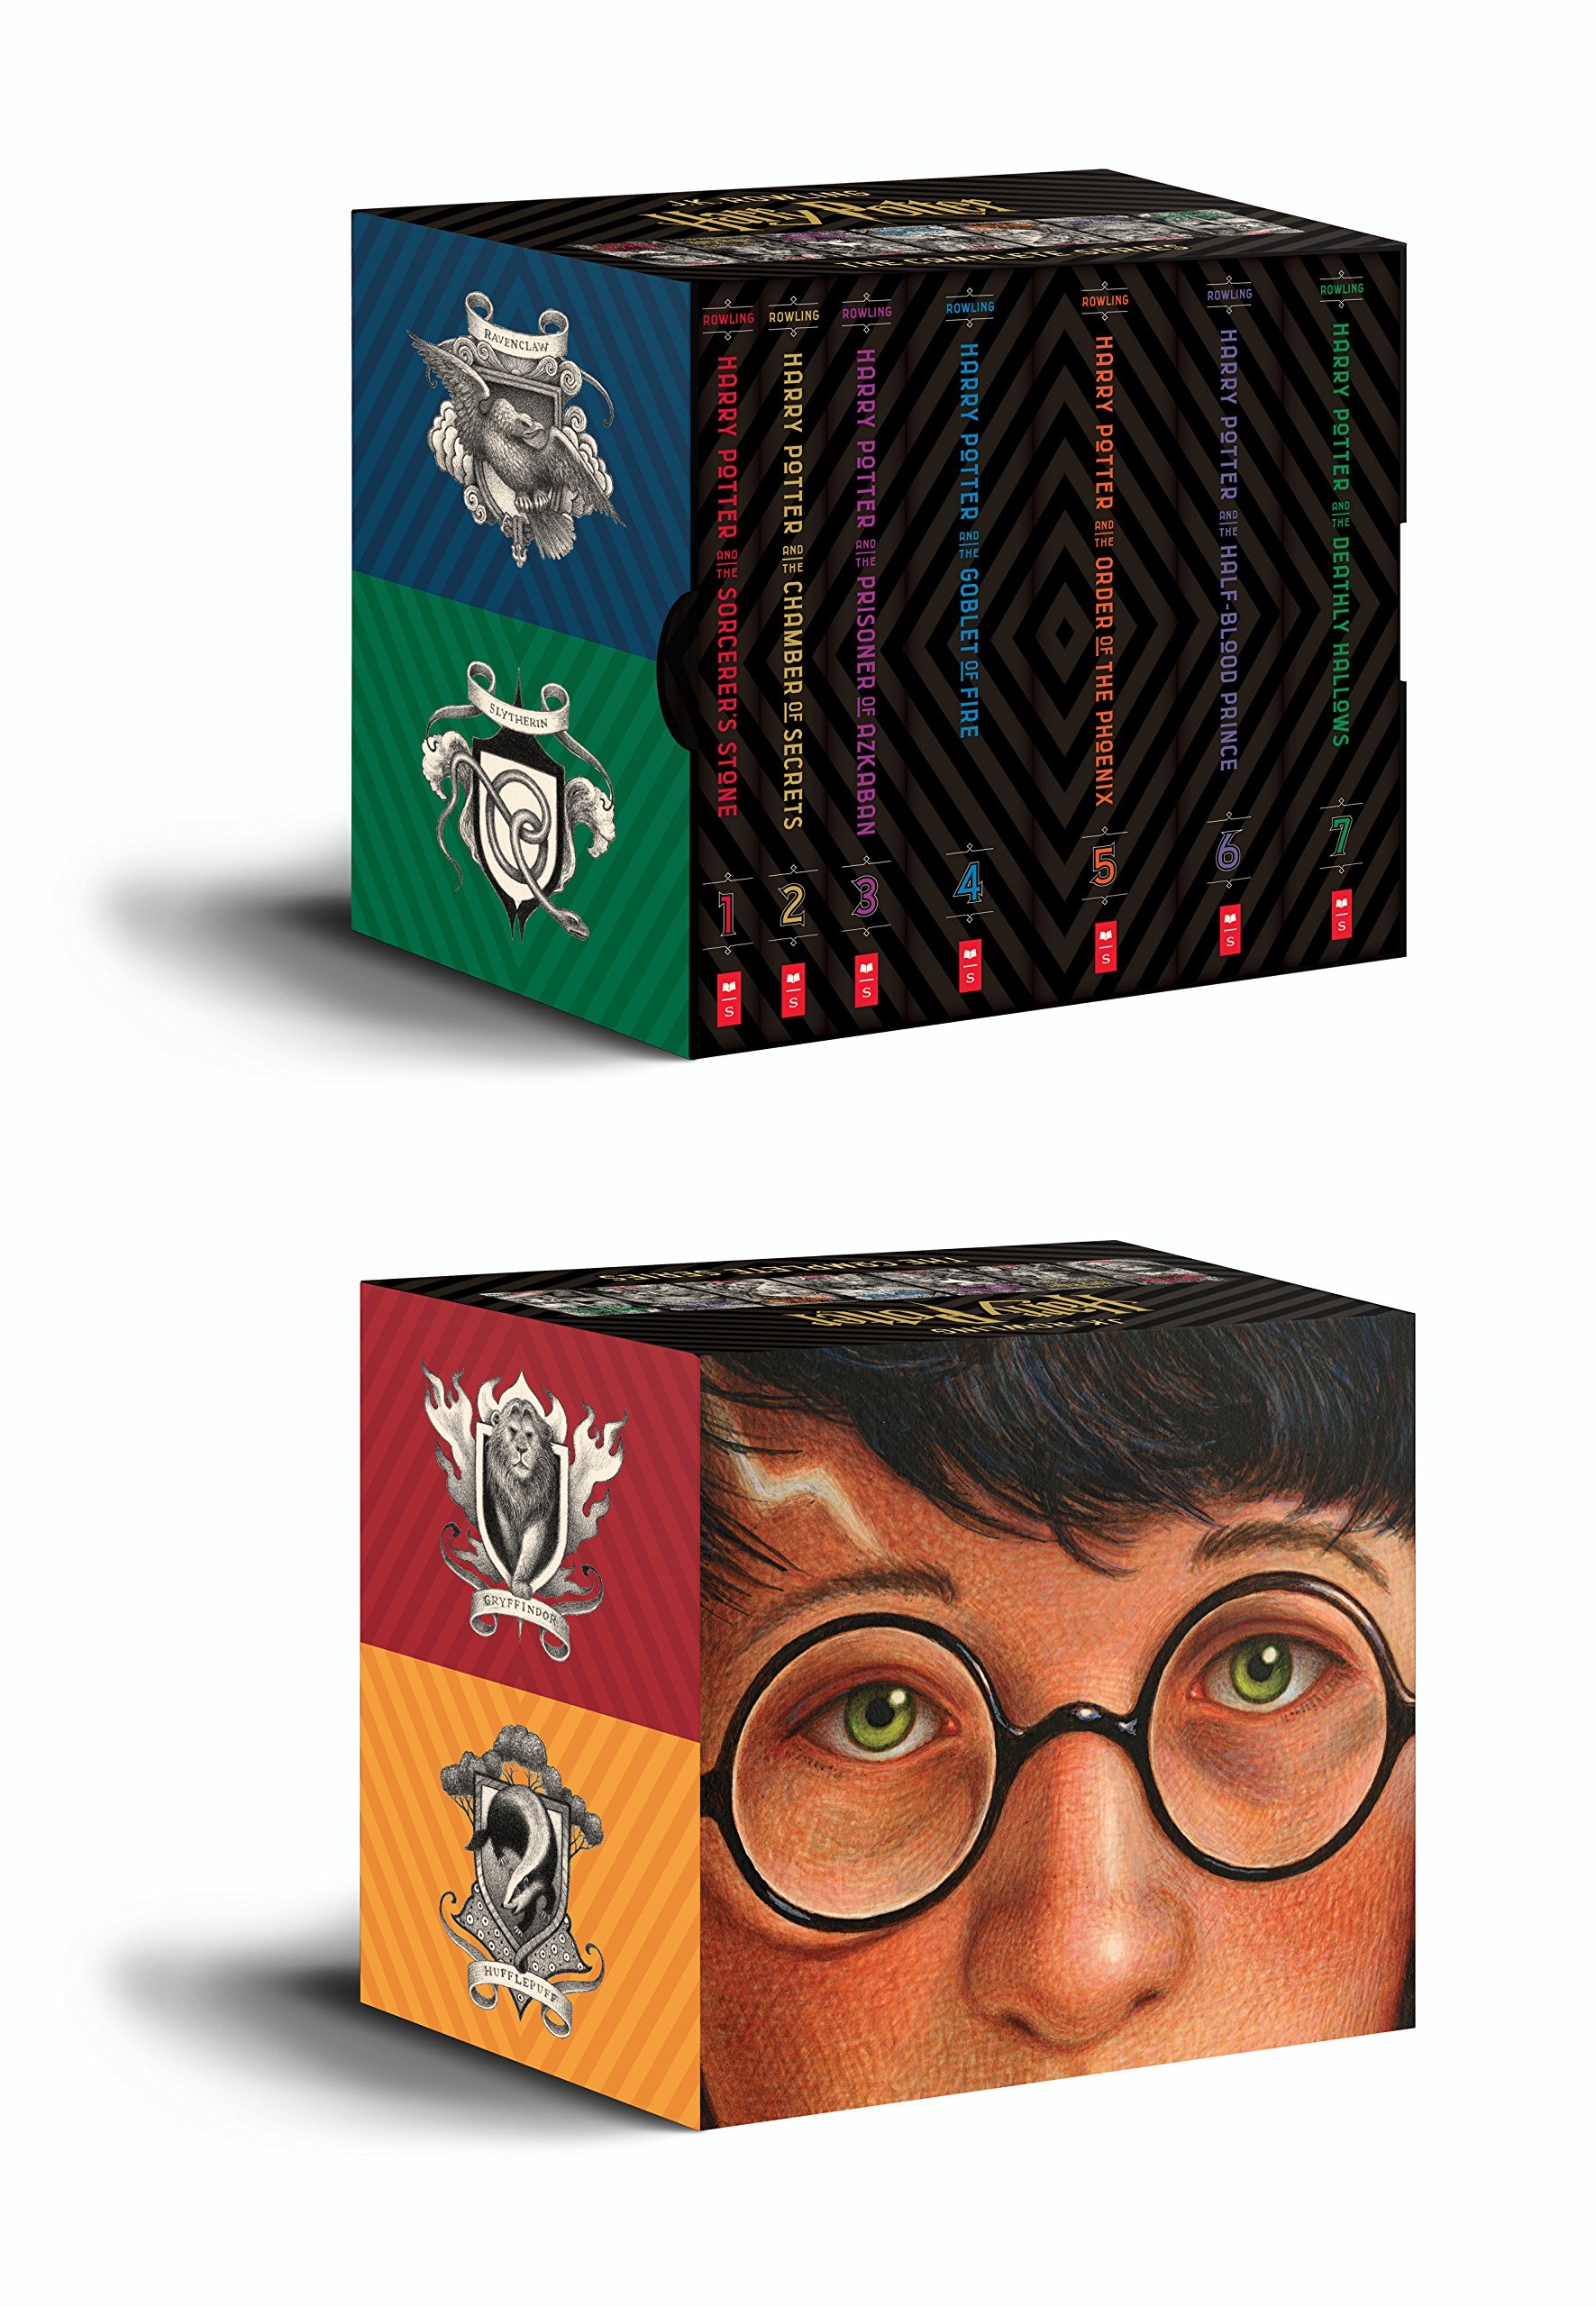 Harry Potter Books Special Boxed product image